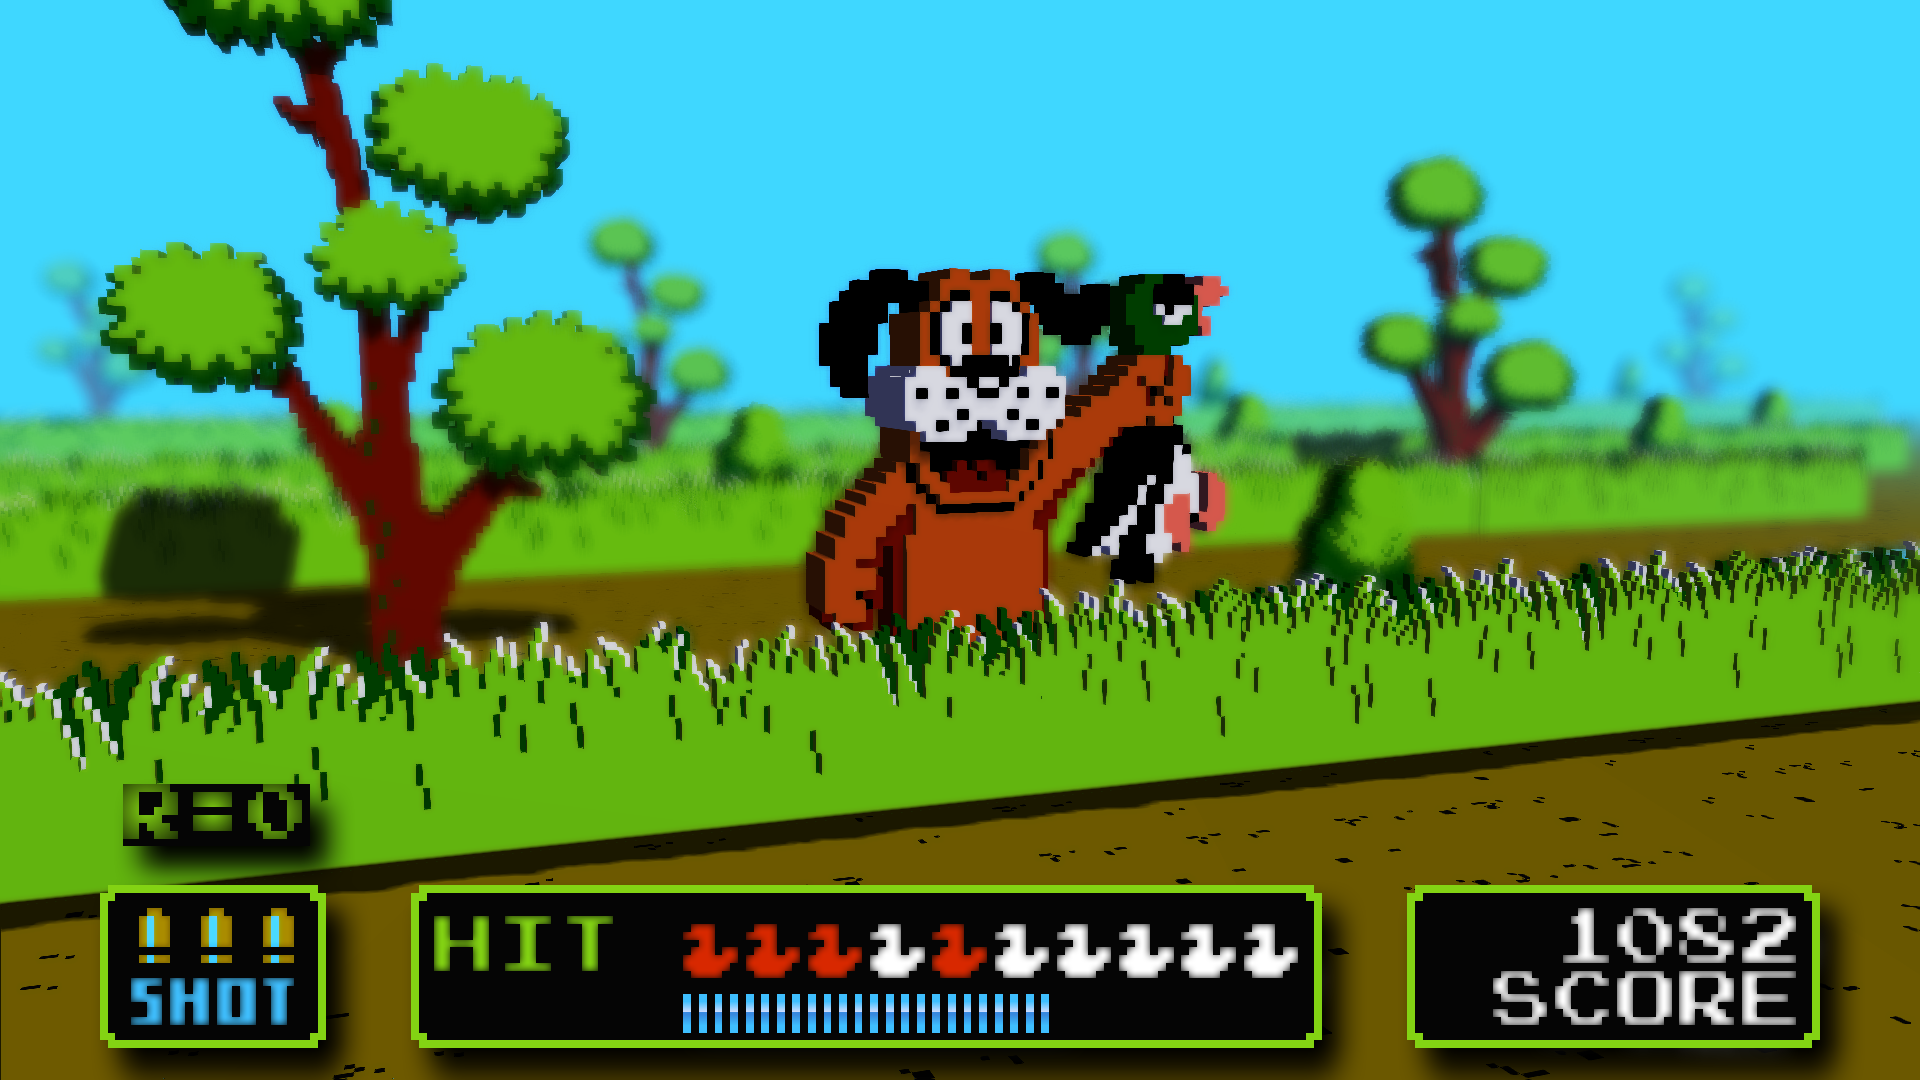 Duck Hunt in 3D [Wallpaper] - Wallpapers and art - Mine-imator forums - Duck Hunting PNG HD